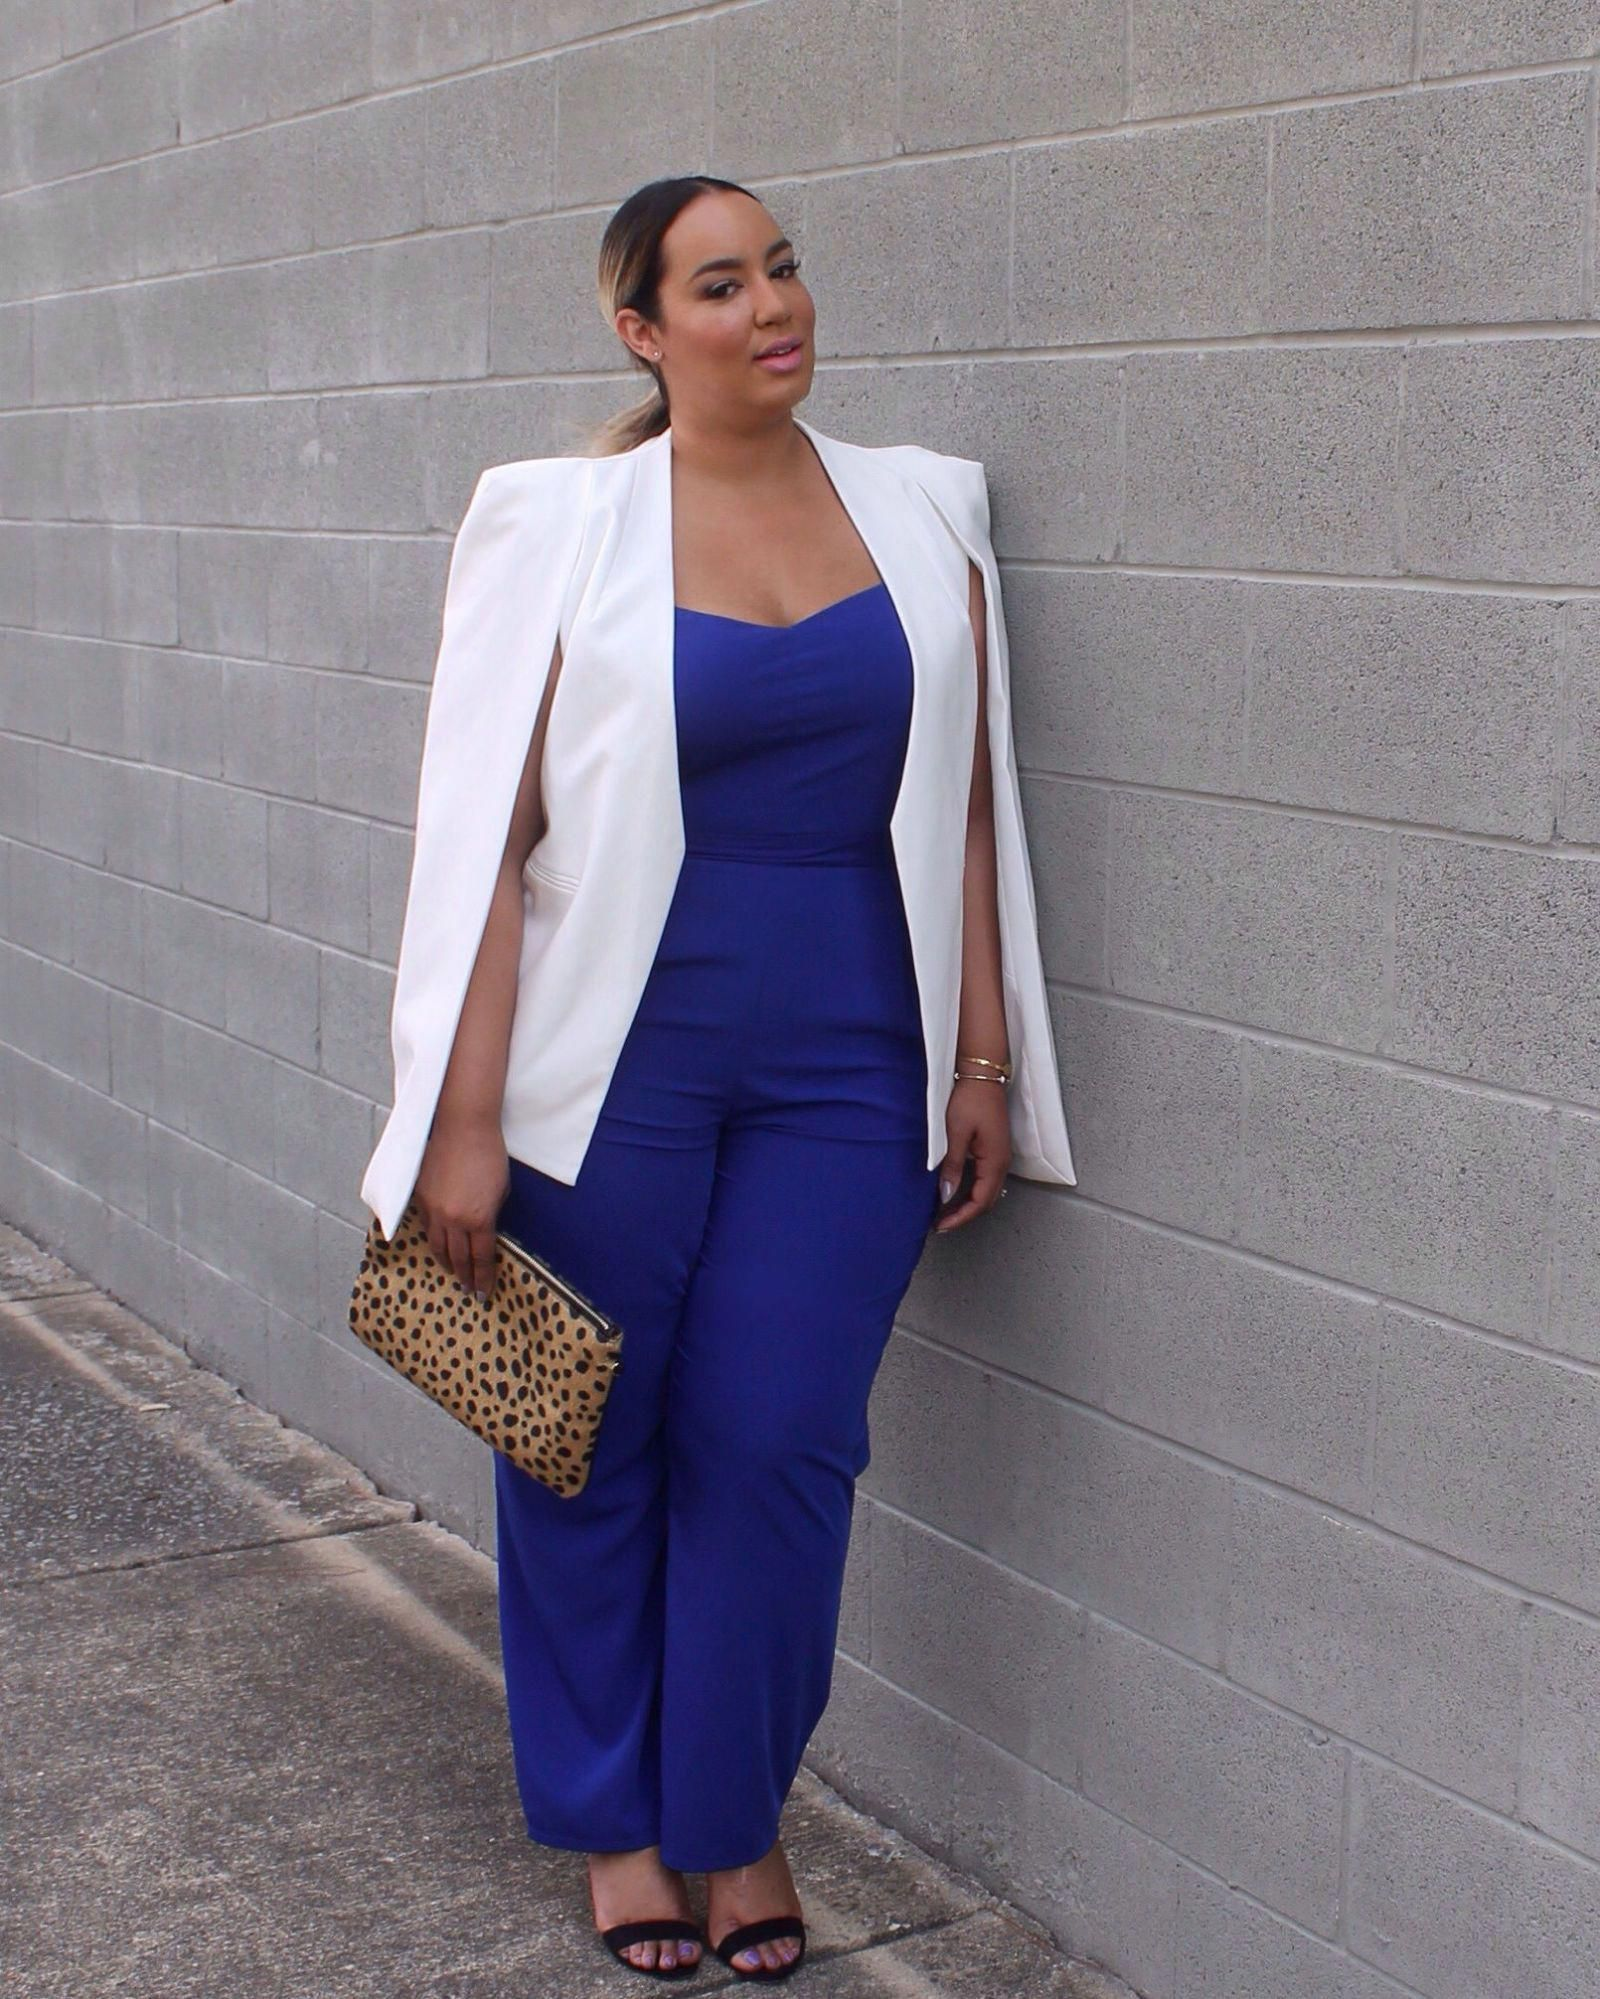 6f949e53f 24 Plus-Size Outfit Ideas for Fall - Plus-Size Style Inspiration   voloptuouswomenplussize